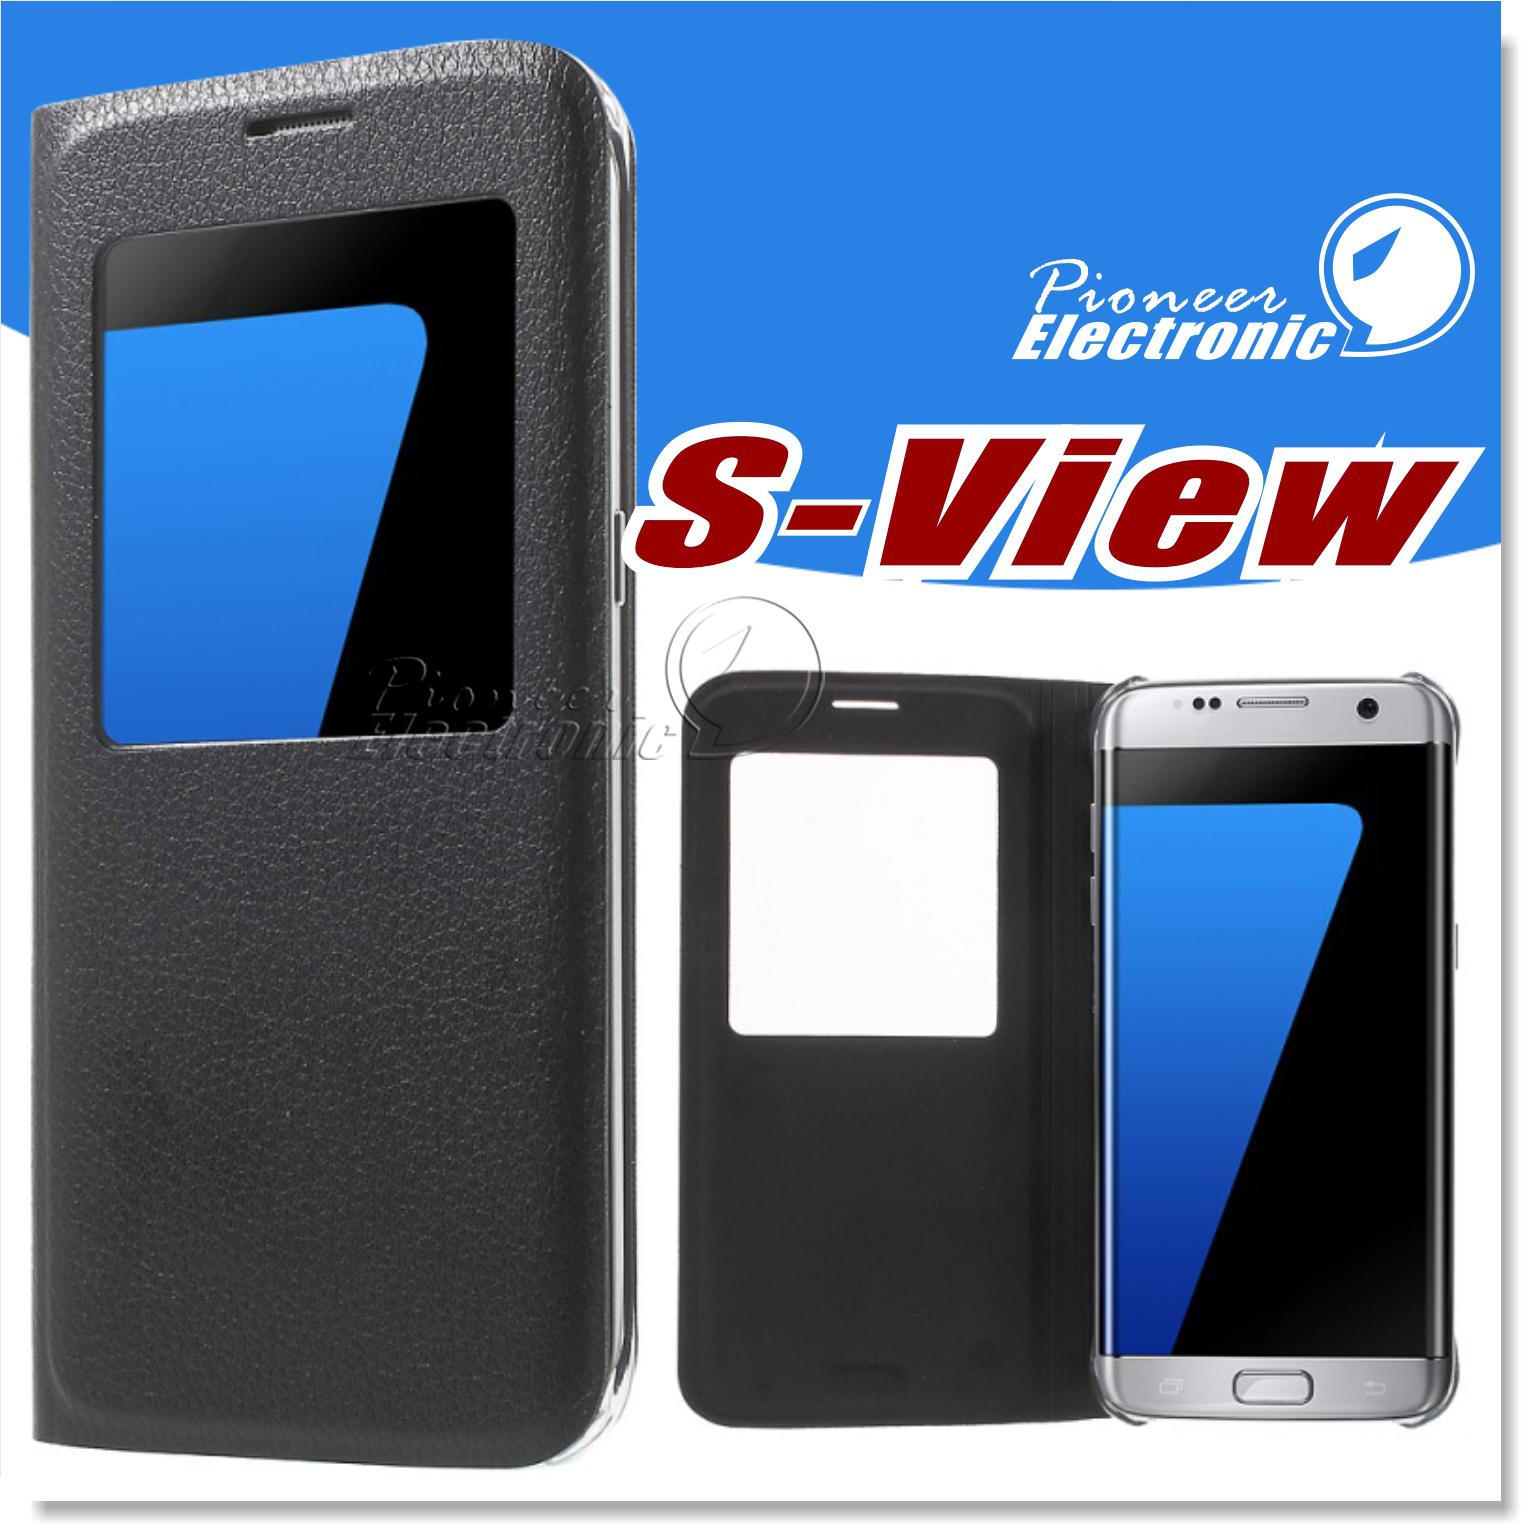 pre order cf2e4 ff2b1 For S10 Plus S9 S8 Plus Leather Flip Mobile Phone Case For Samsung Galaxy  S7 Window View Shock-Proof Cover For Iphone 7 Galaxy S7 EDGE CASE